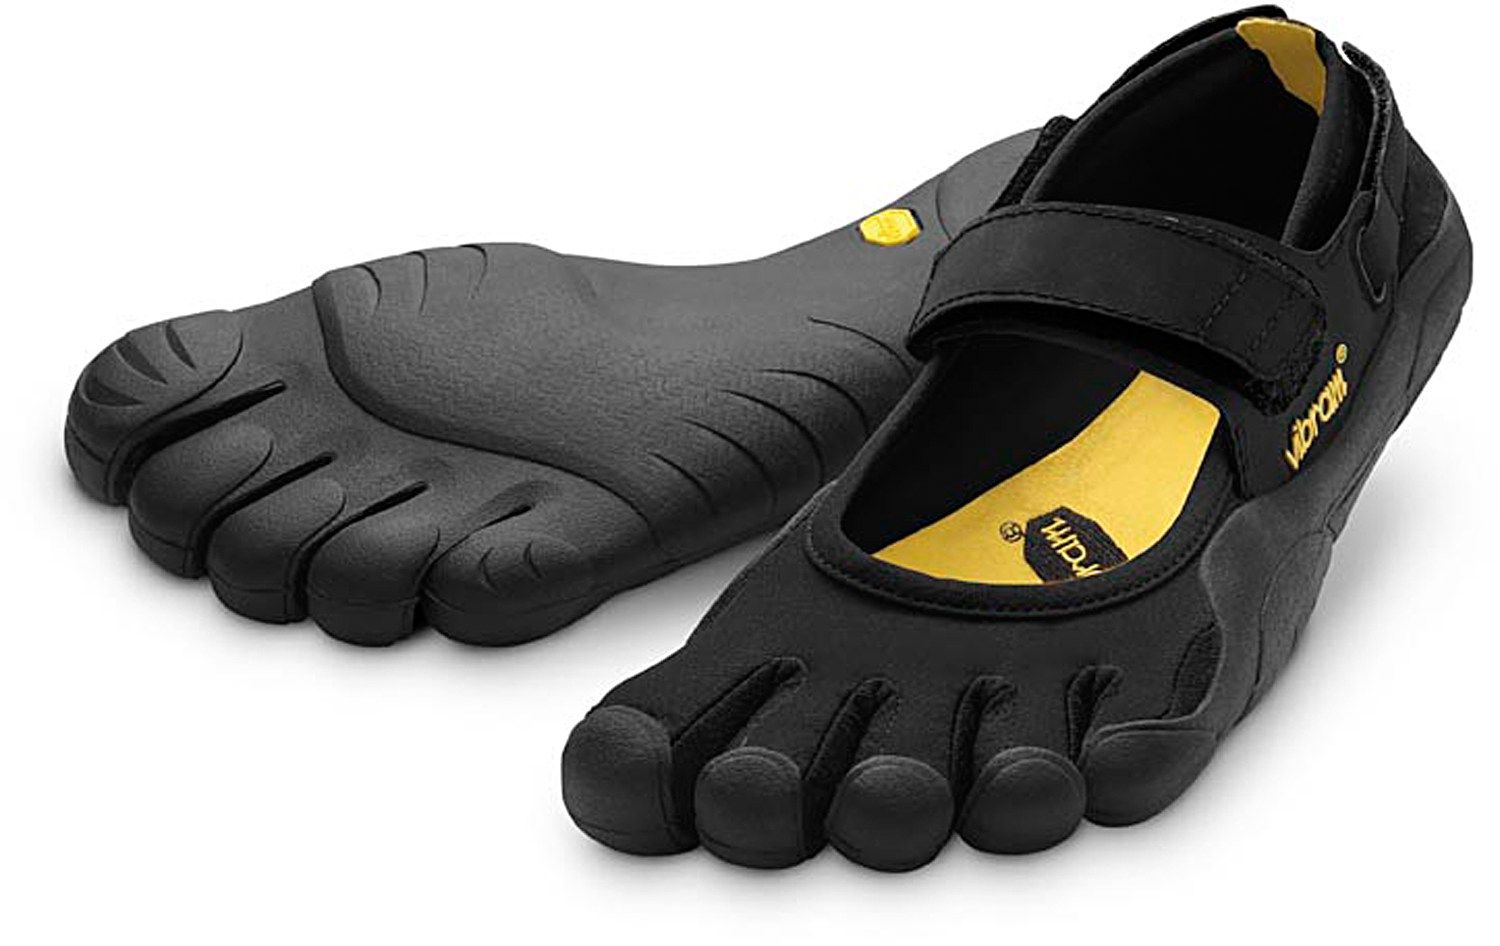 online store 8988c 6a147 Vibram FiveFingers Sprint Multisport Shoes. These are great for walking  around. They are a good break from boots and running shoes.